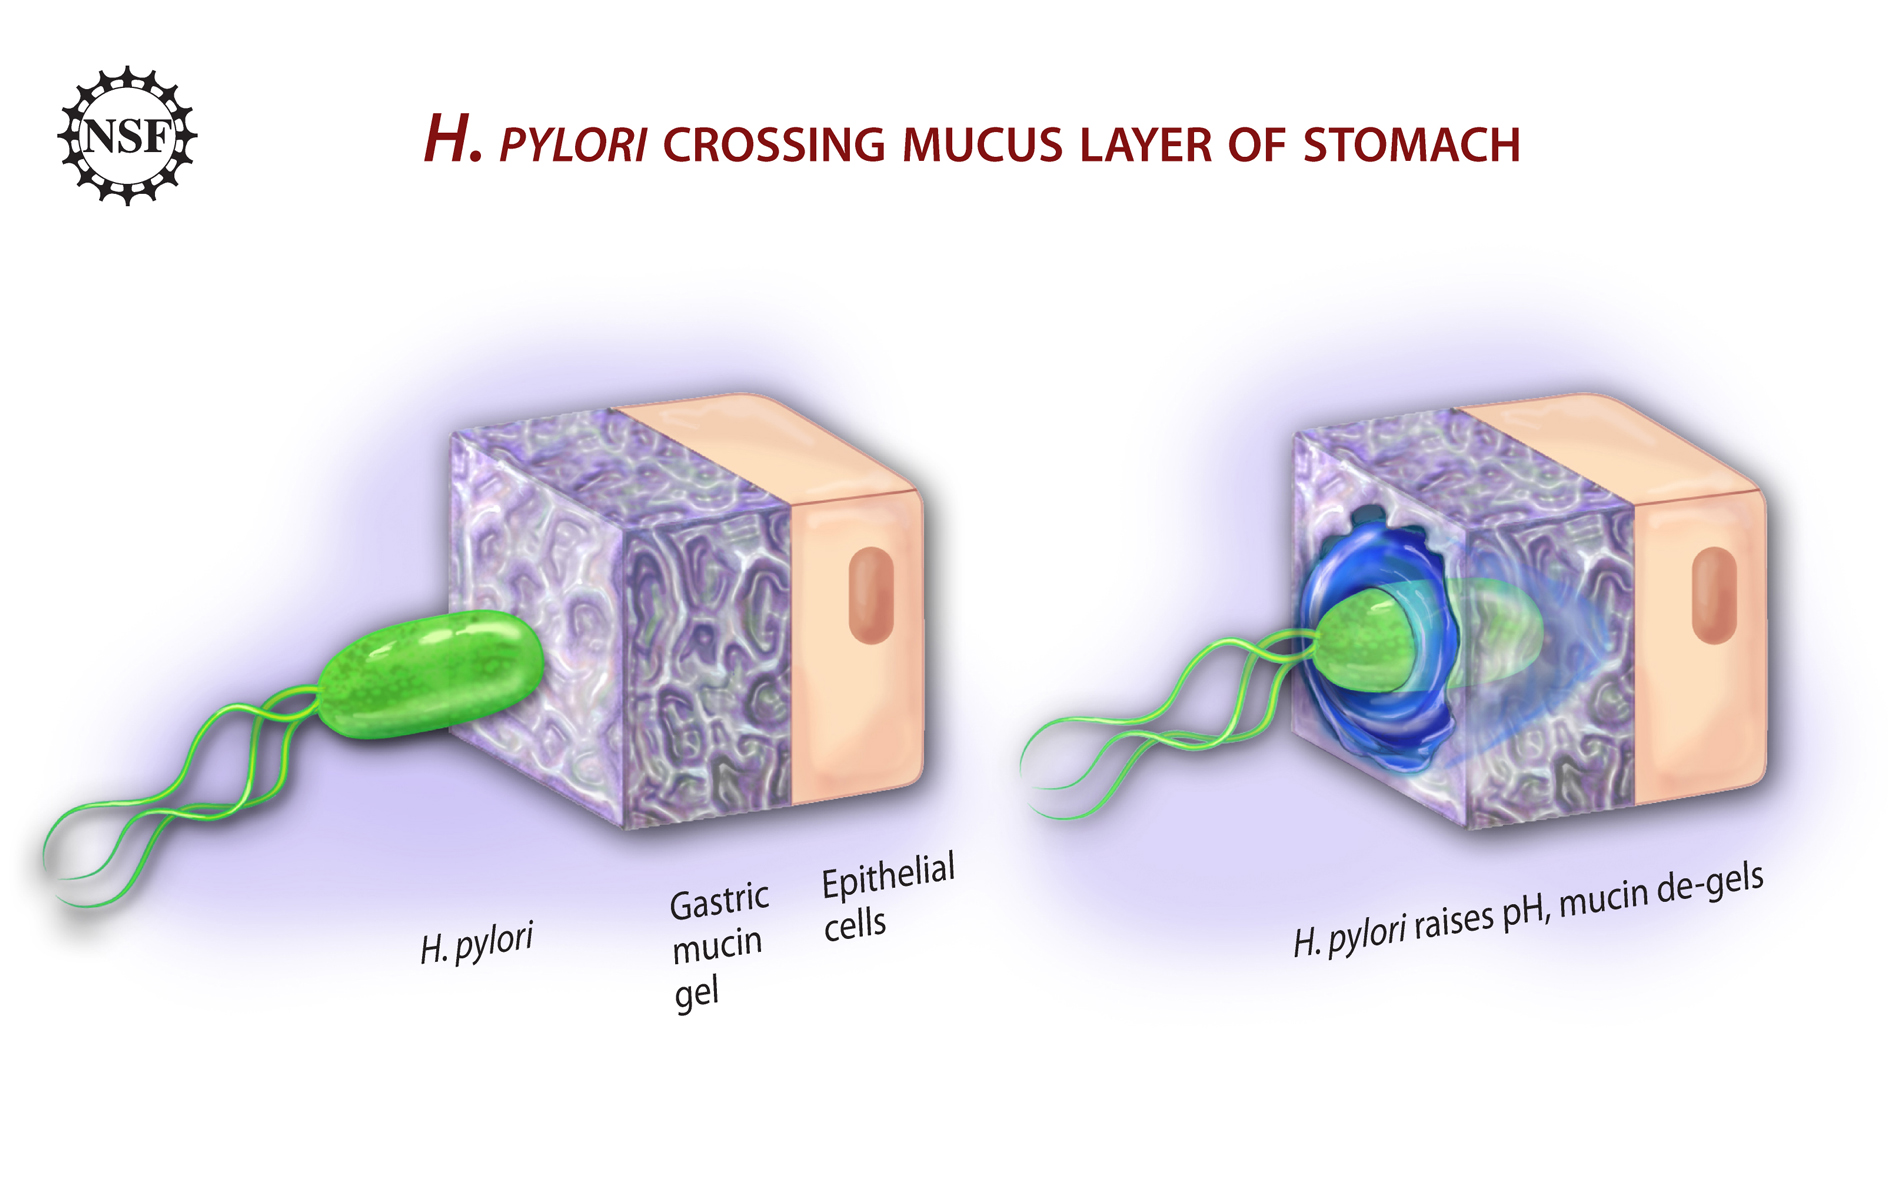 File:Ulcer-causing Bacterium (H.Pylori) Crossing Mucus Layer of Stomach